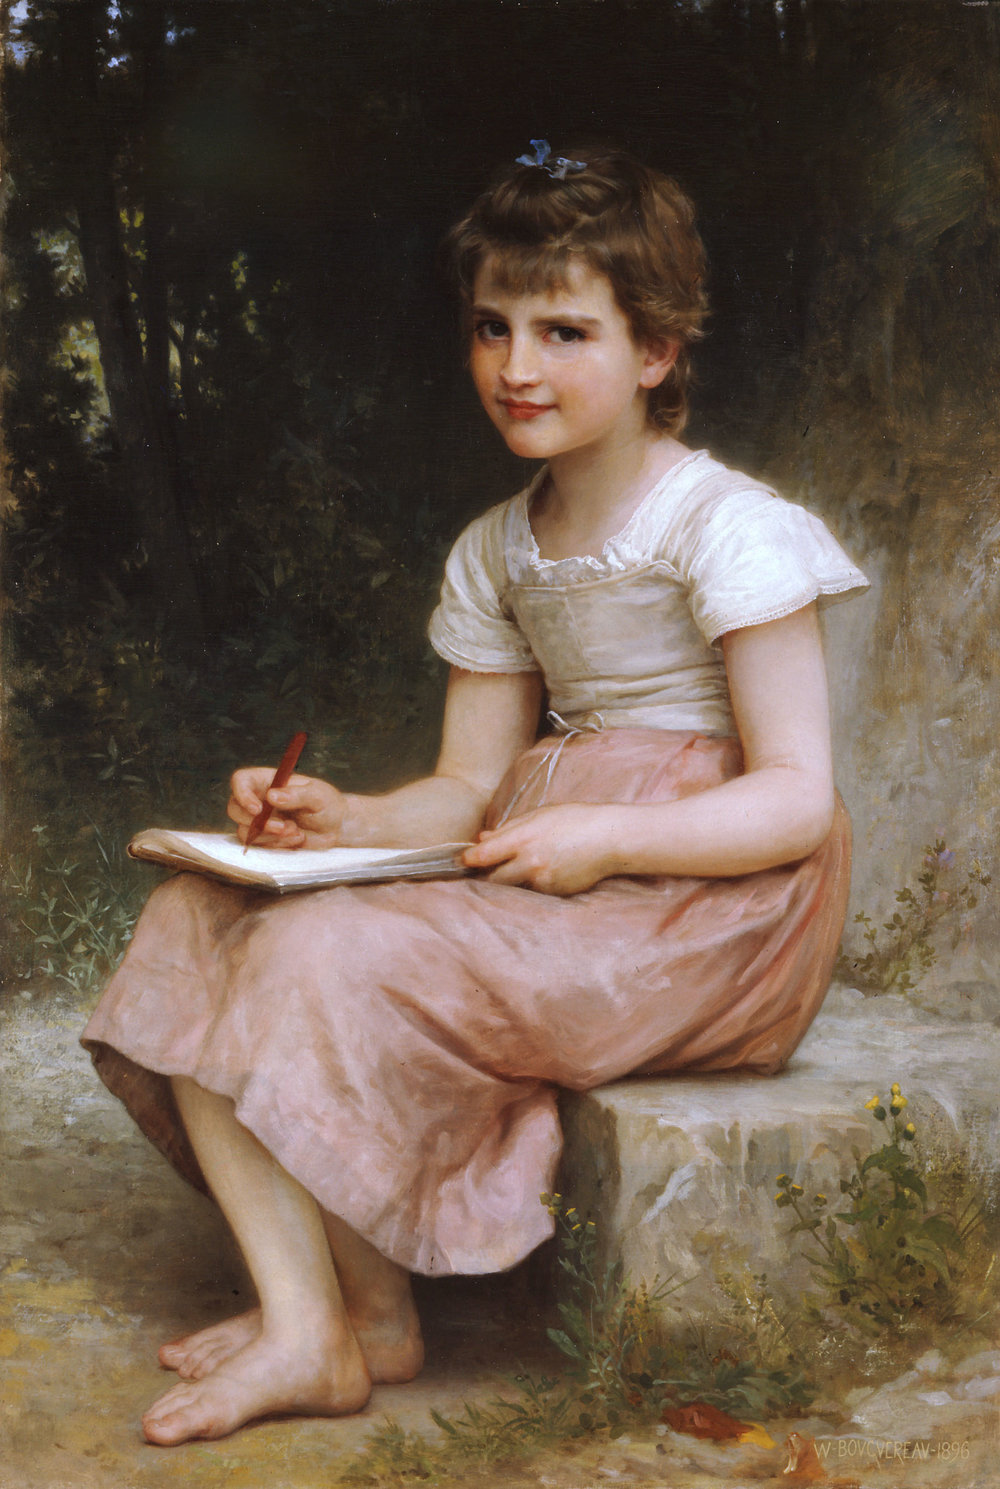 - William-Adolphe Bouguereau (1825-1905) - A Calling (1896)